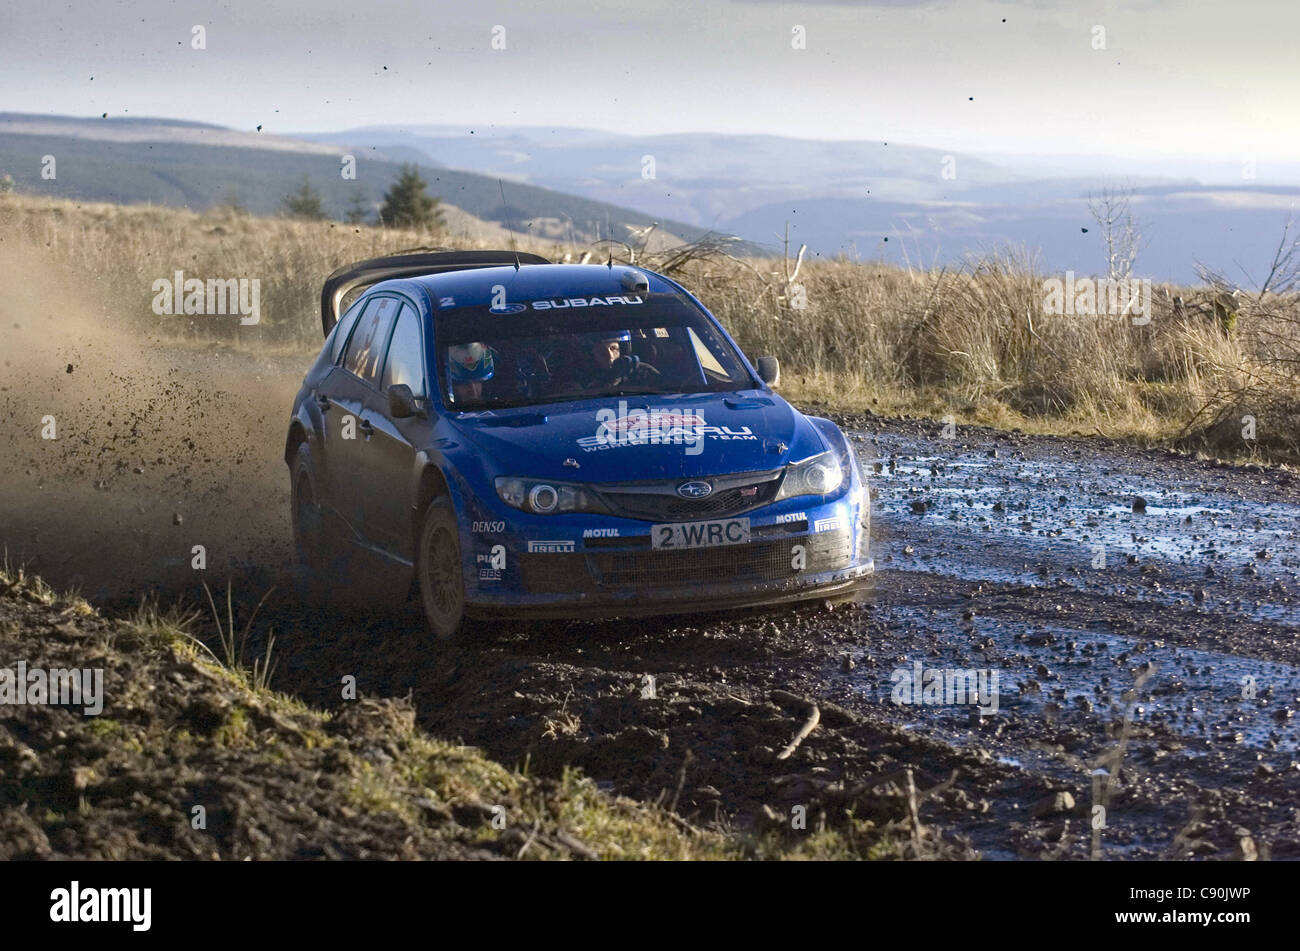 Petter Solberg on the Resolven stage of the Wales Rally GB in the forests of South Wales in 2008. - Stock Image